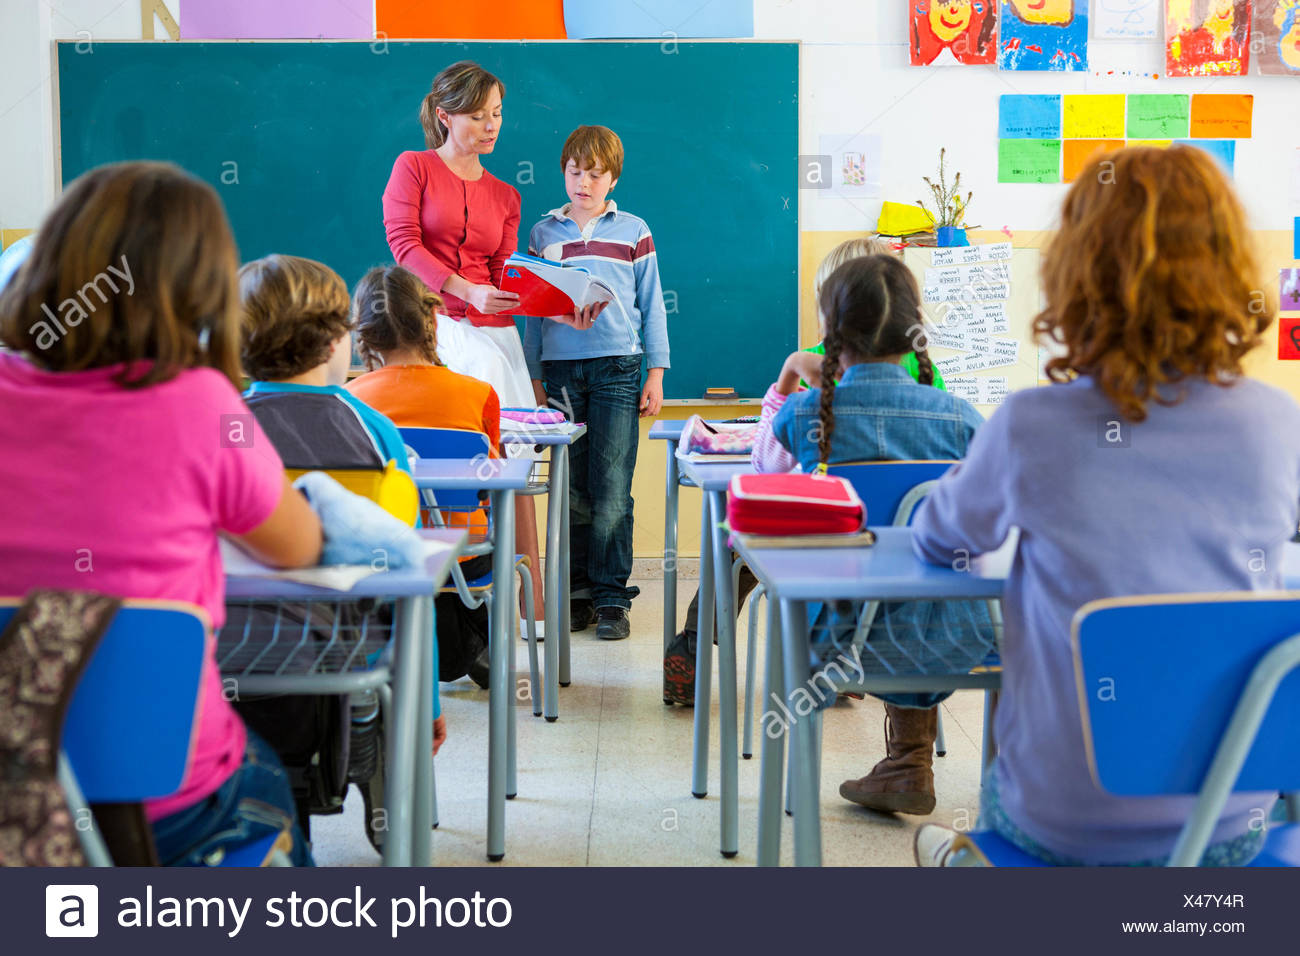 Primary schoolboy reading at front of classroom - Stock Image